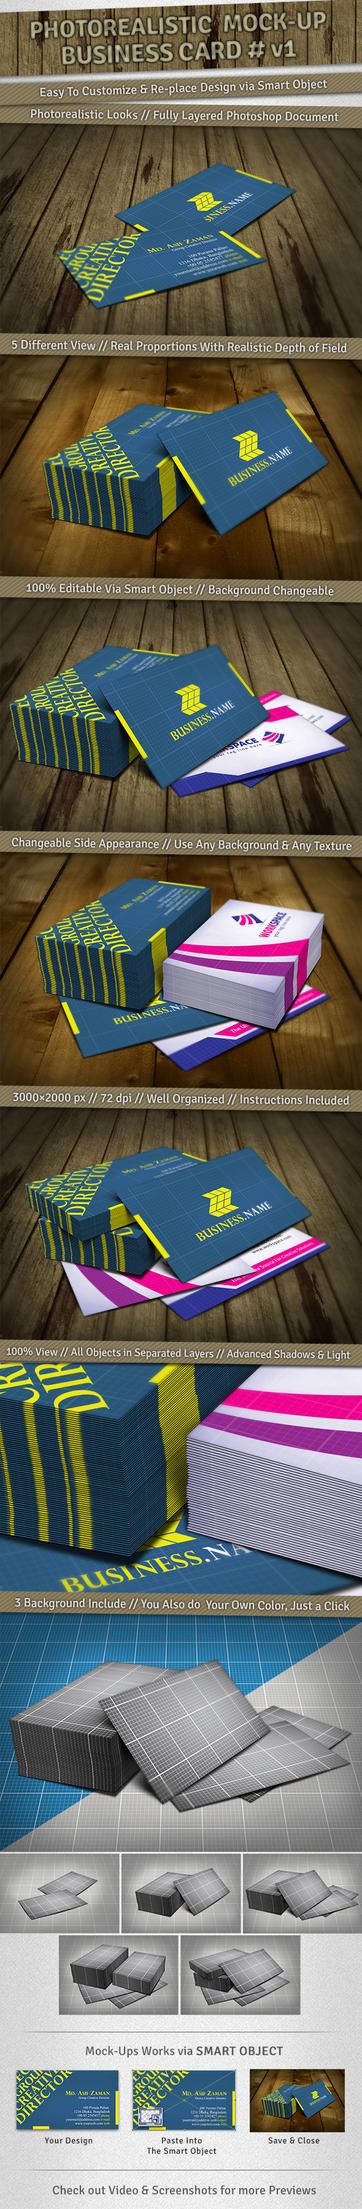 5 Mockups : Photorealistic Business Card v1 by femographi